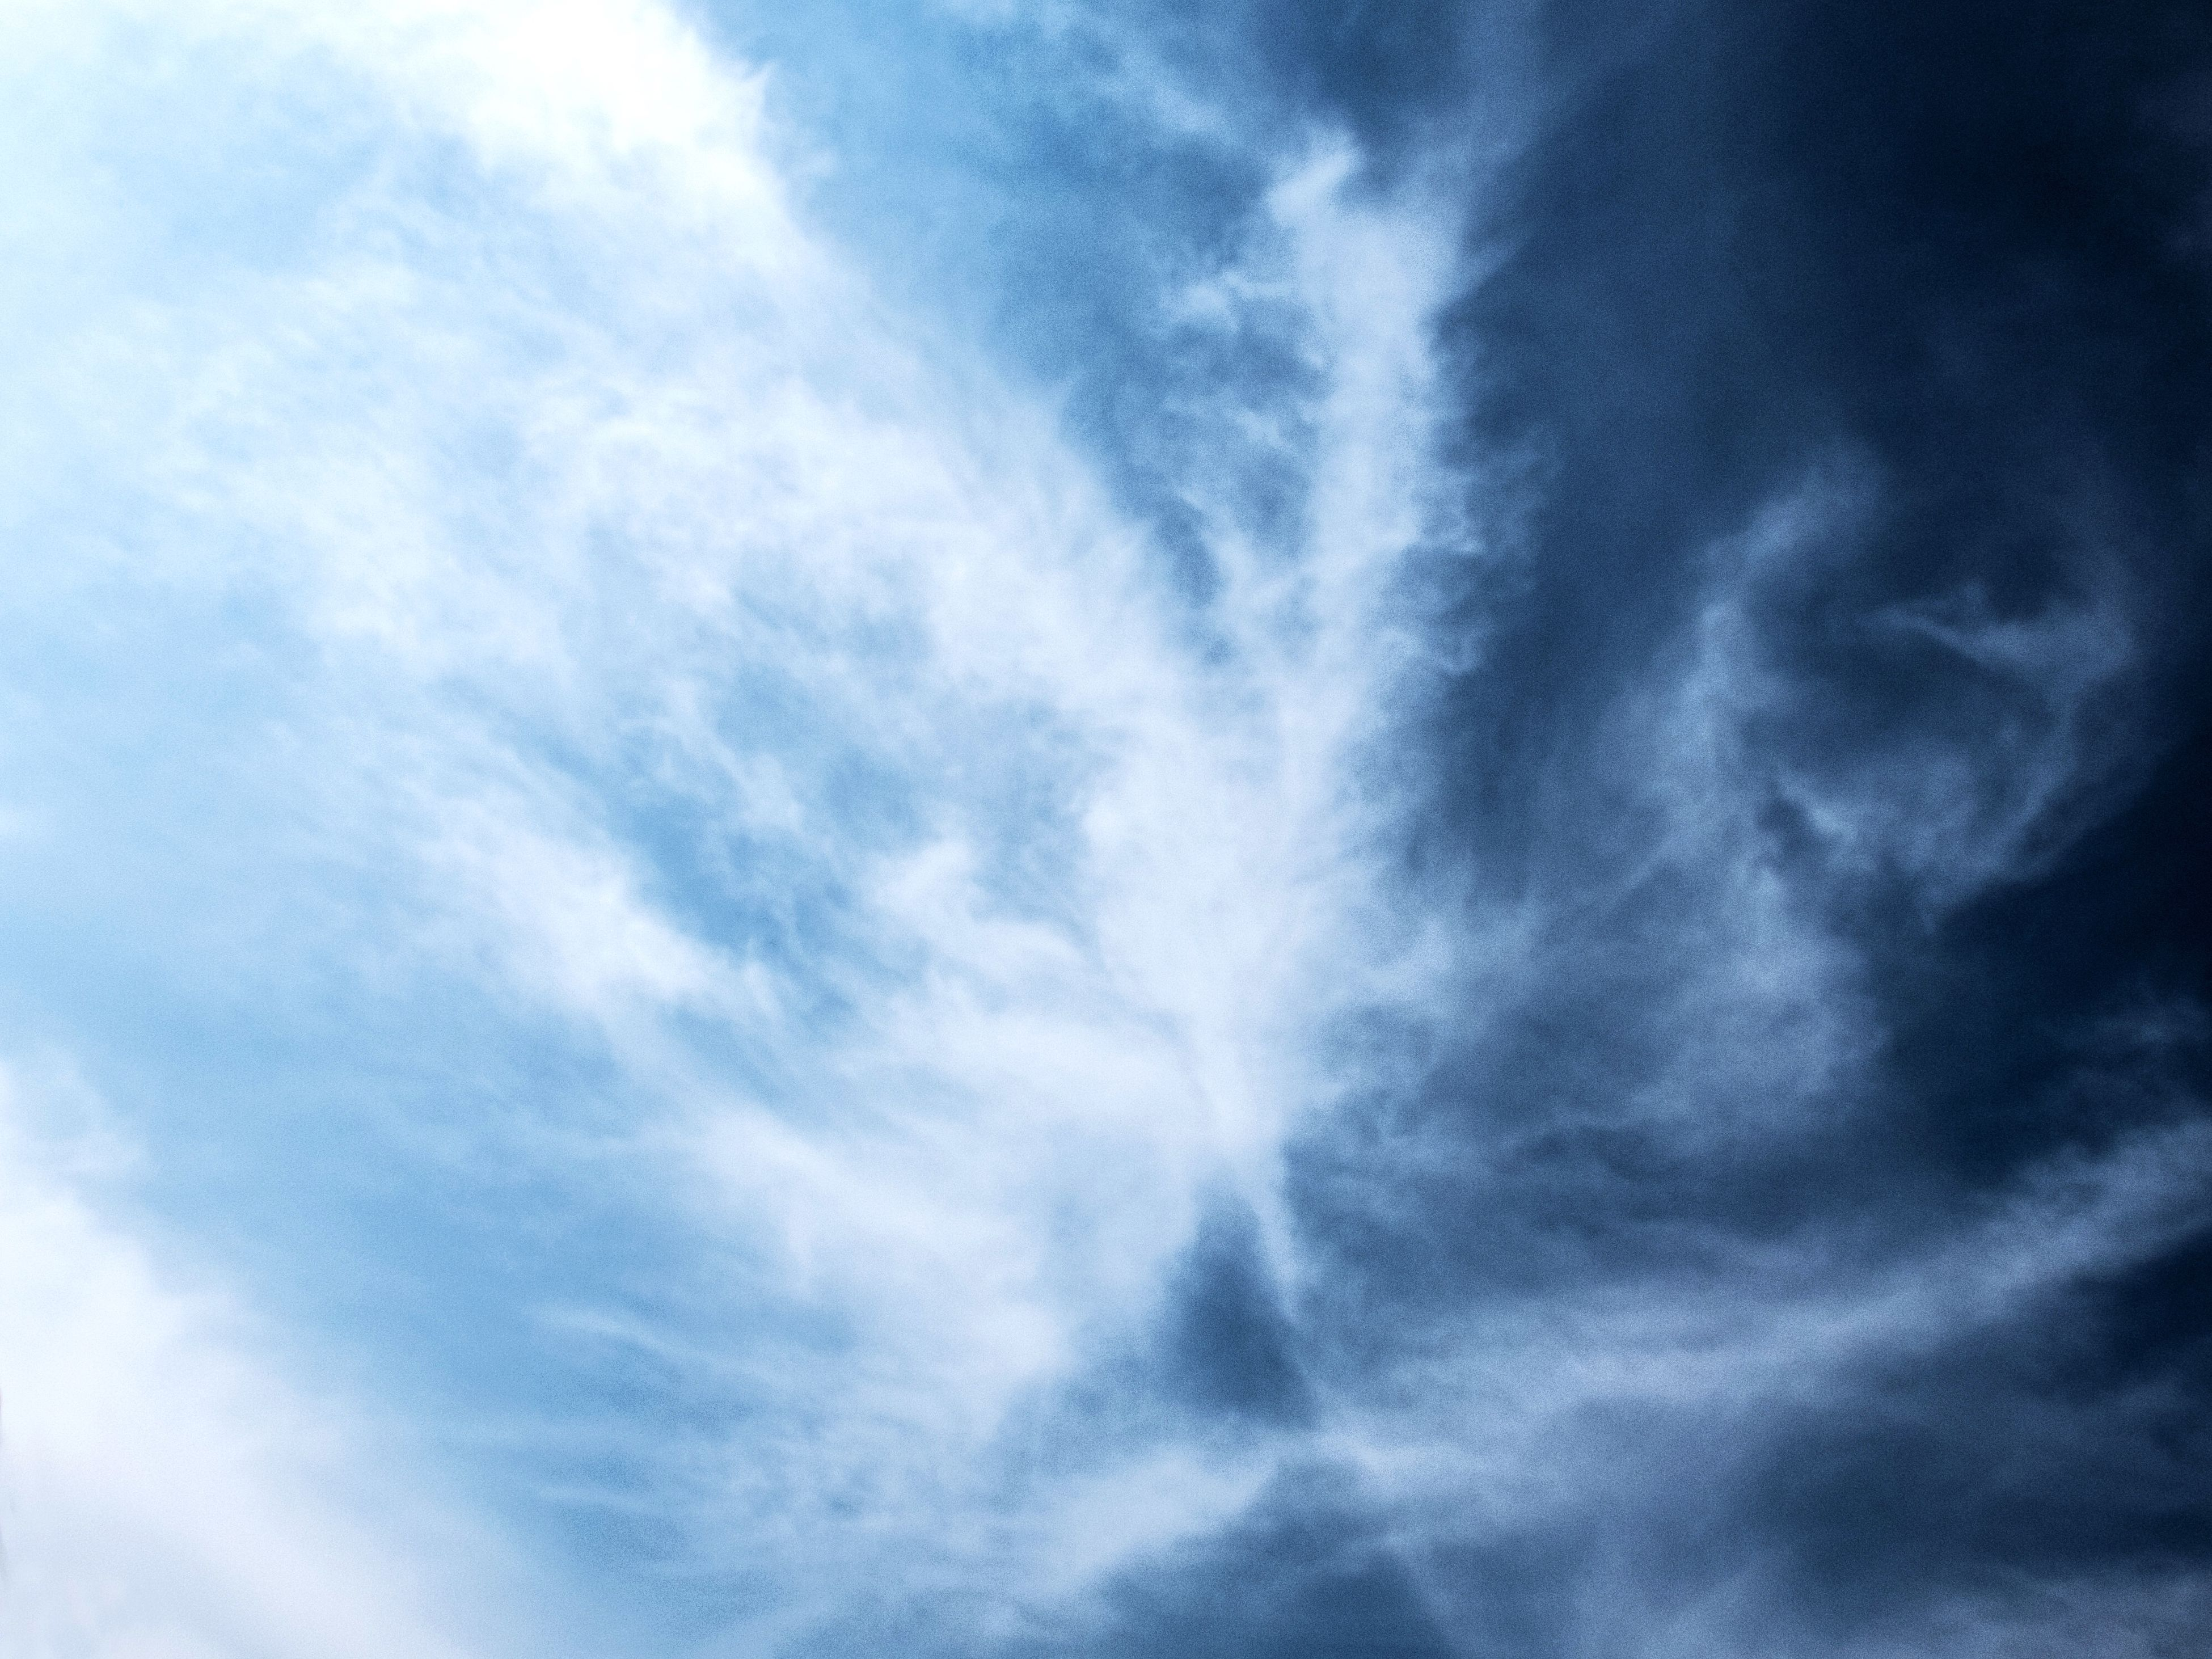 low angle view, sky, cloud - sky, sky only, cloudy, beauty in nature, tranquility, backgrounds, cloudscape, nature, scenics, full frame, blue, cloud, tranquil scene, weather, idyllic, outdoors, no people, day